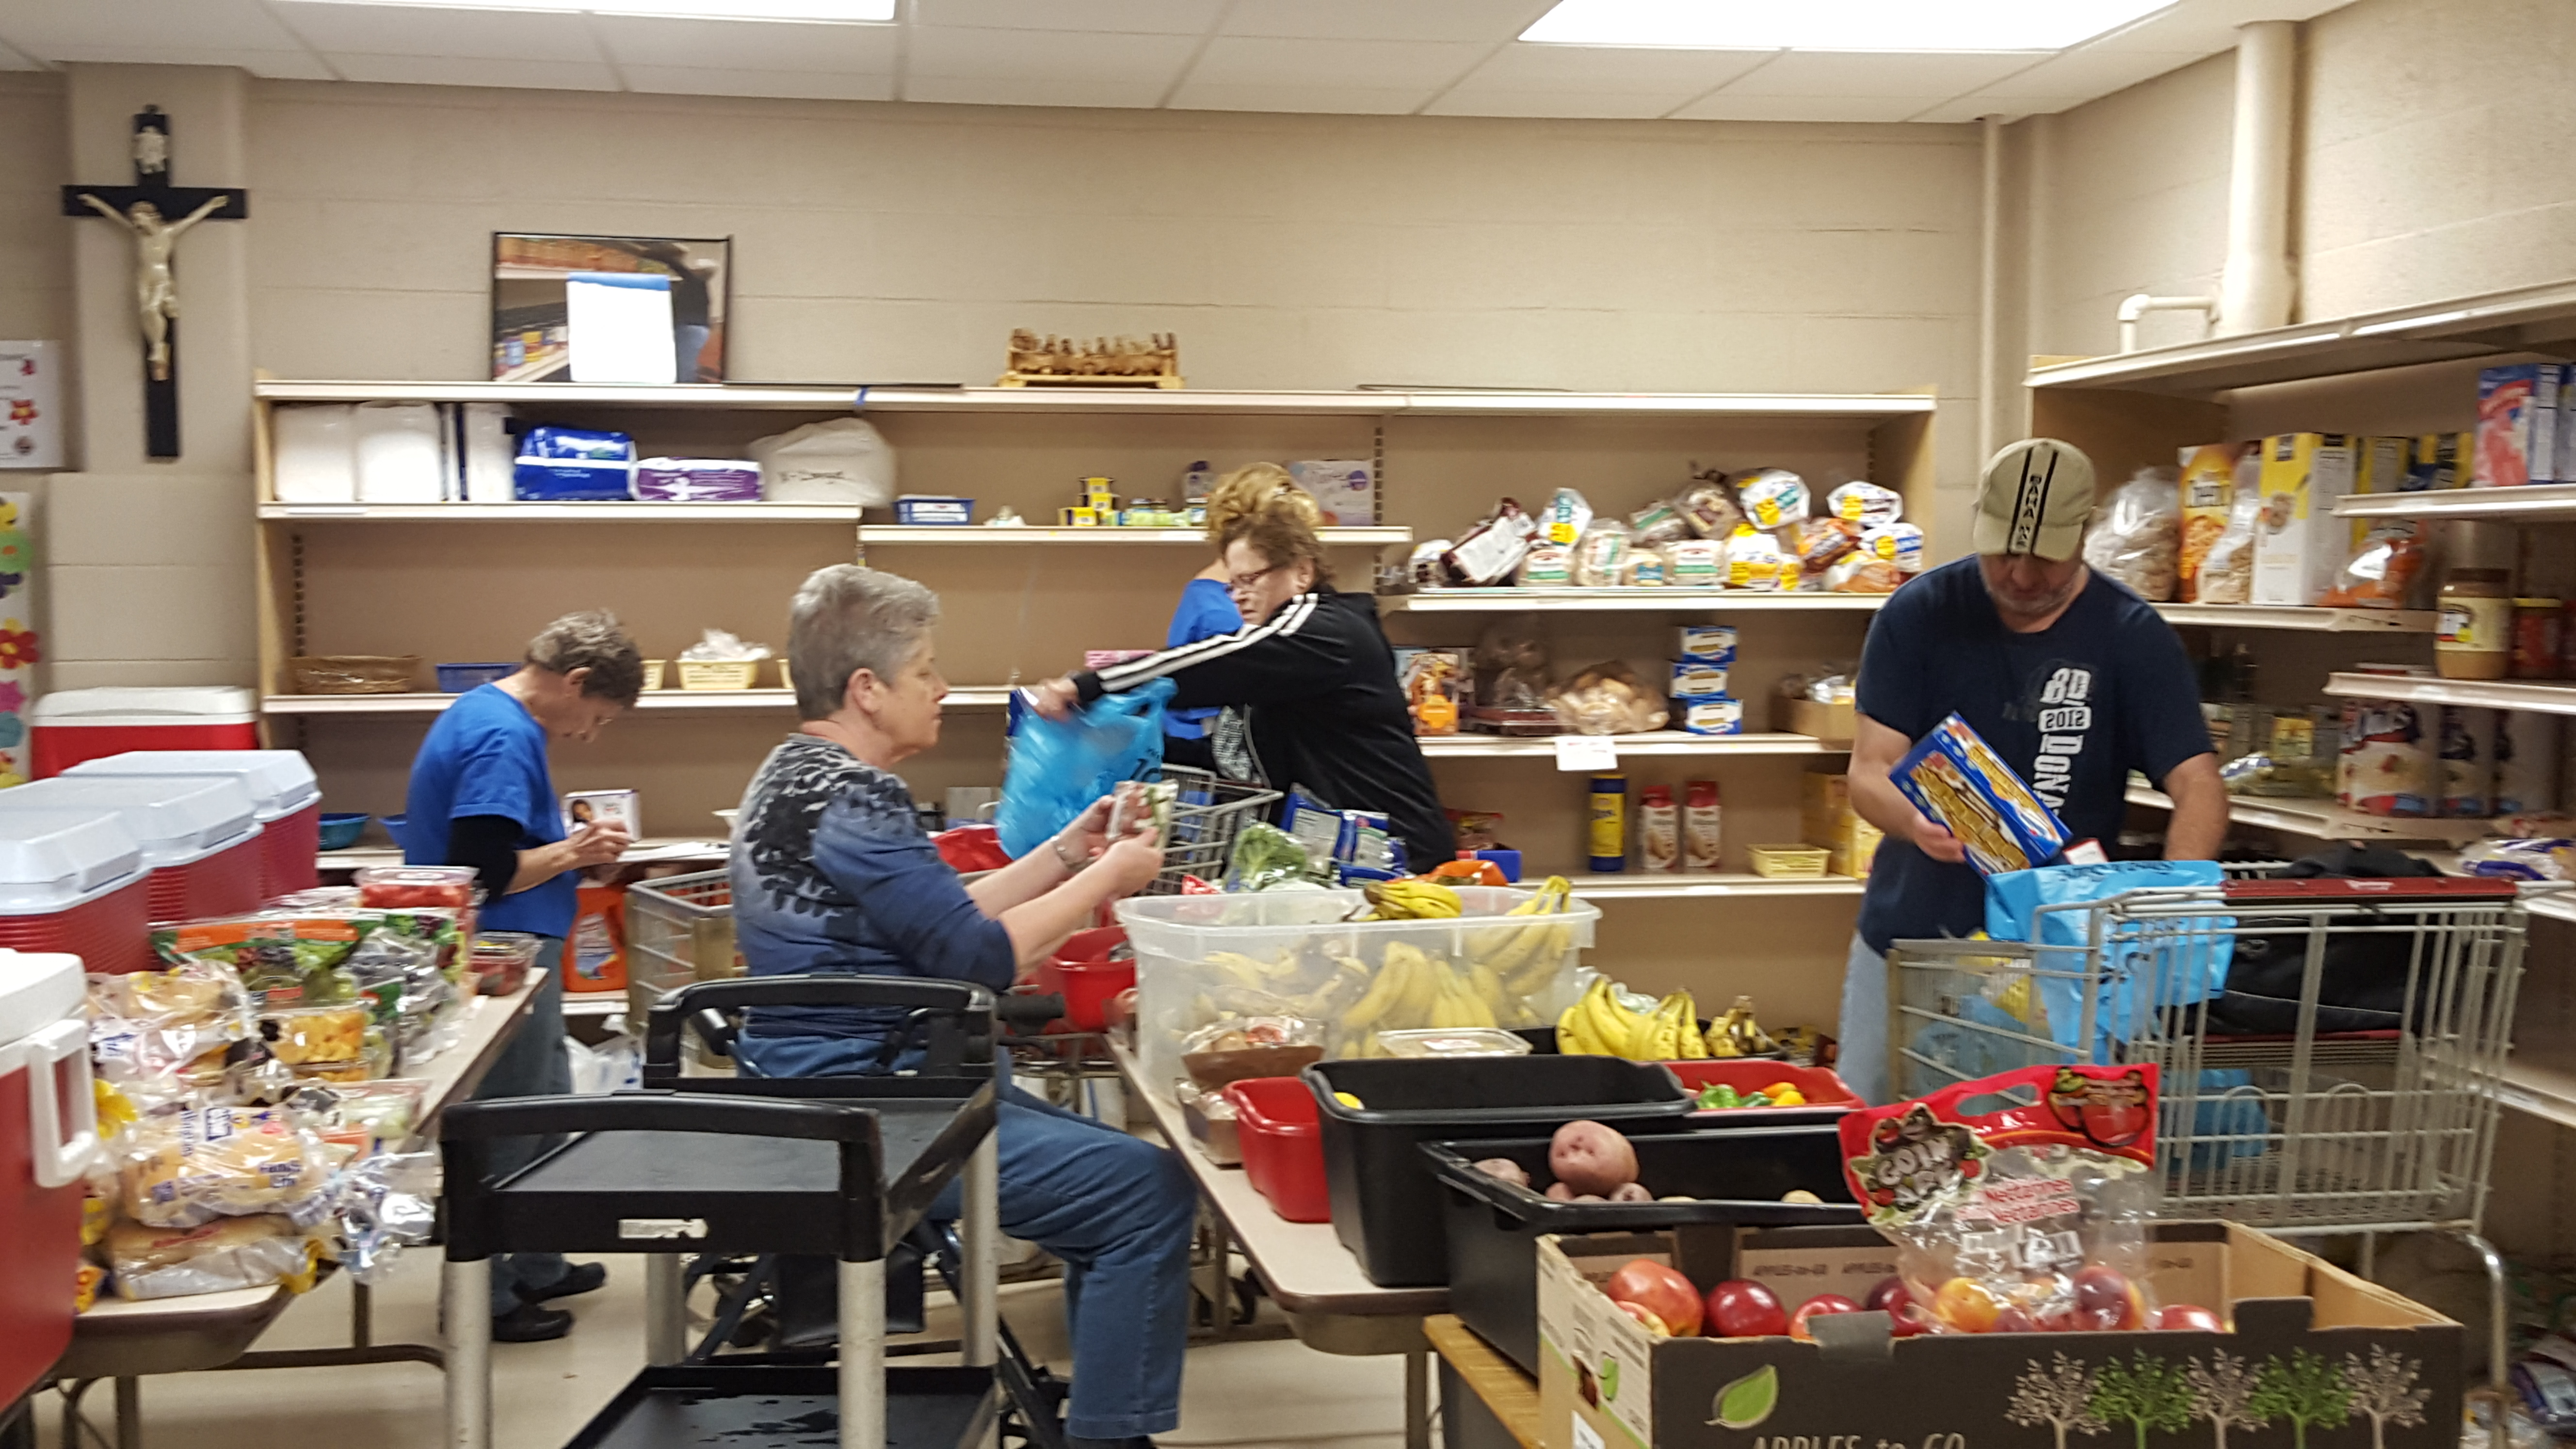 What Do You Need To Qualify For Food Pantry